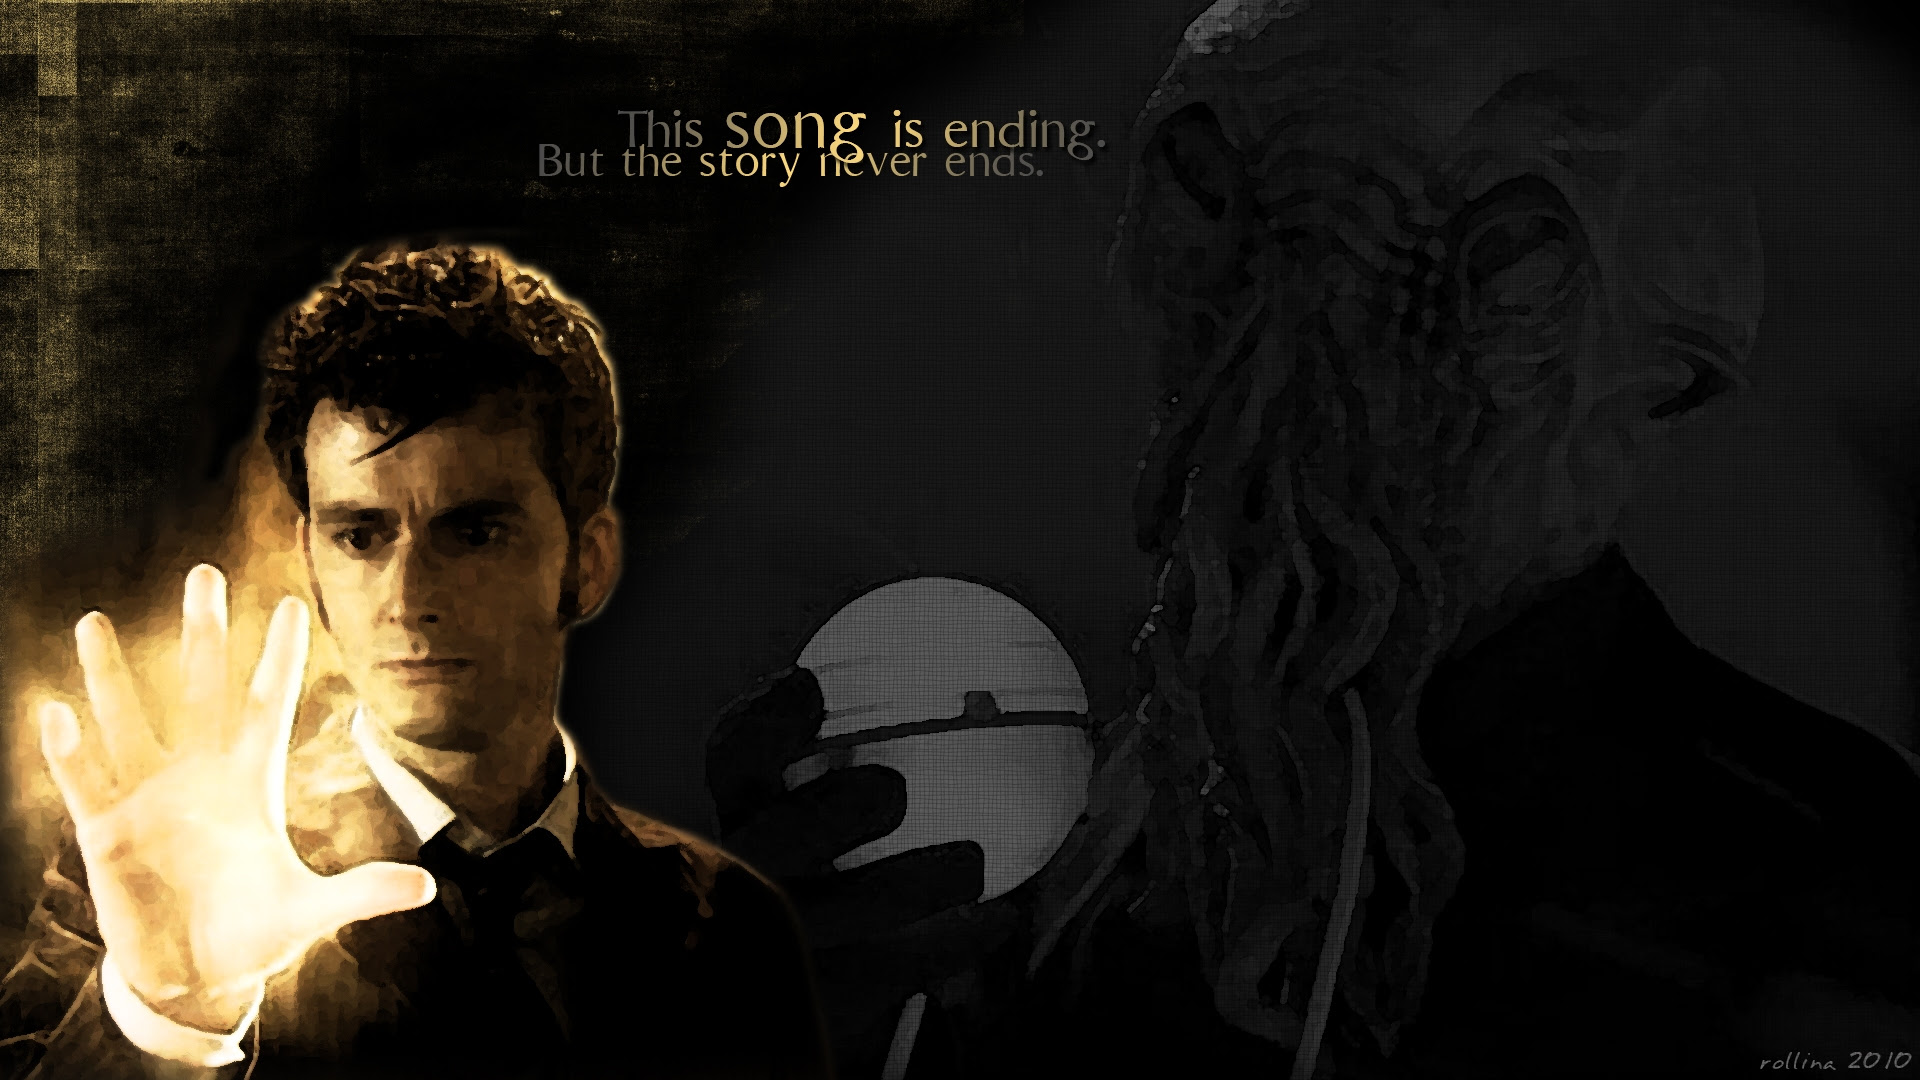 David Tennant Ood Doctor Who Tenth Doctor 1920x1080 Wallpaper High